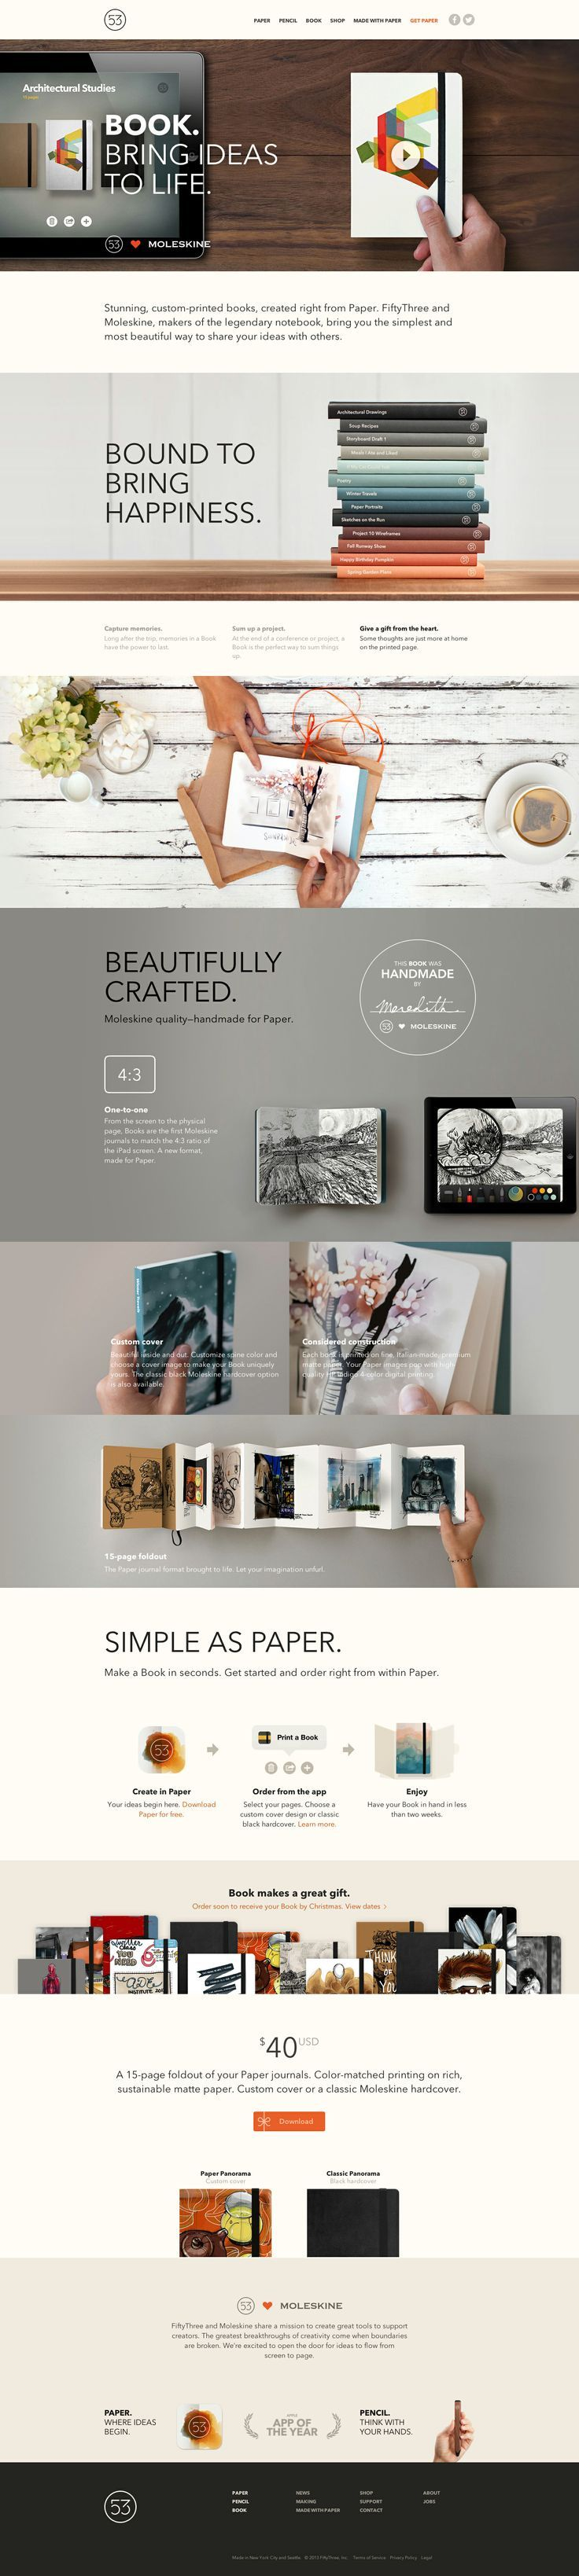 Great Website Design Ideas 15 great website layout ideas for inspiration The Best Web Designs Of 2014